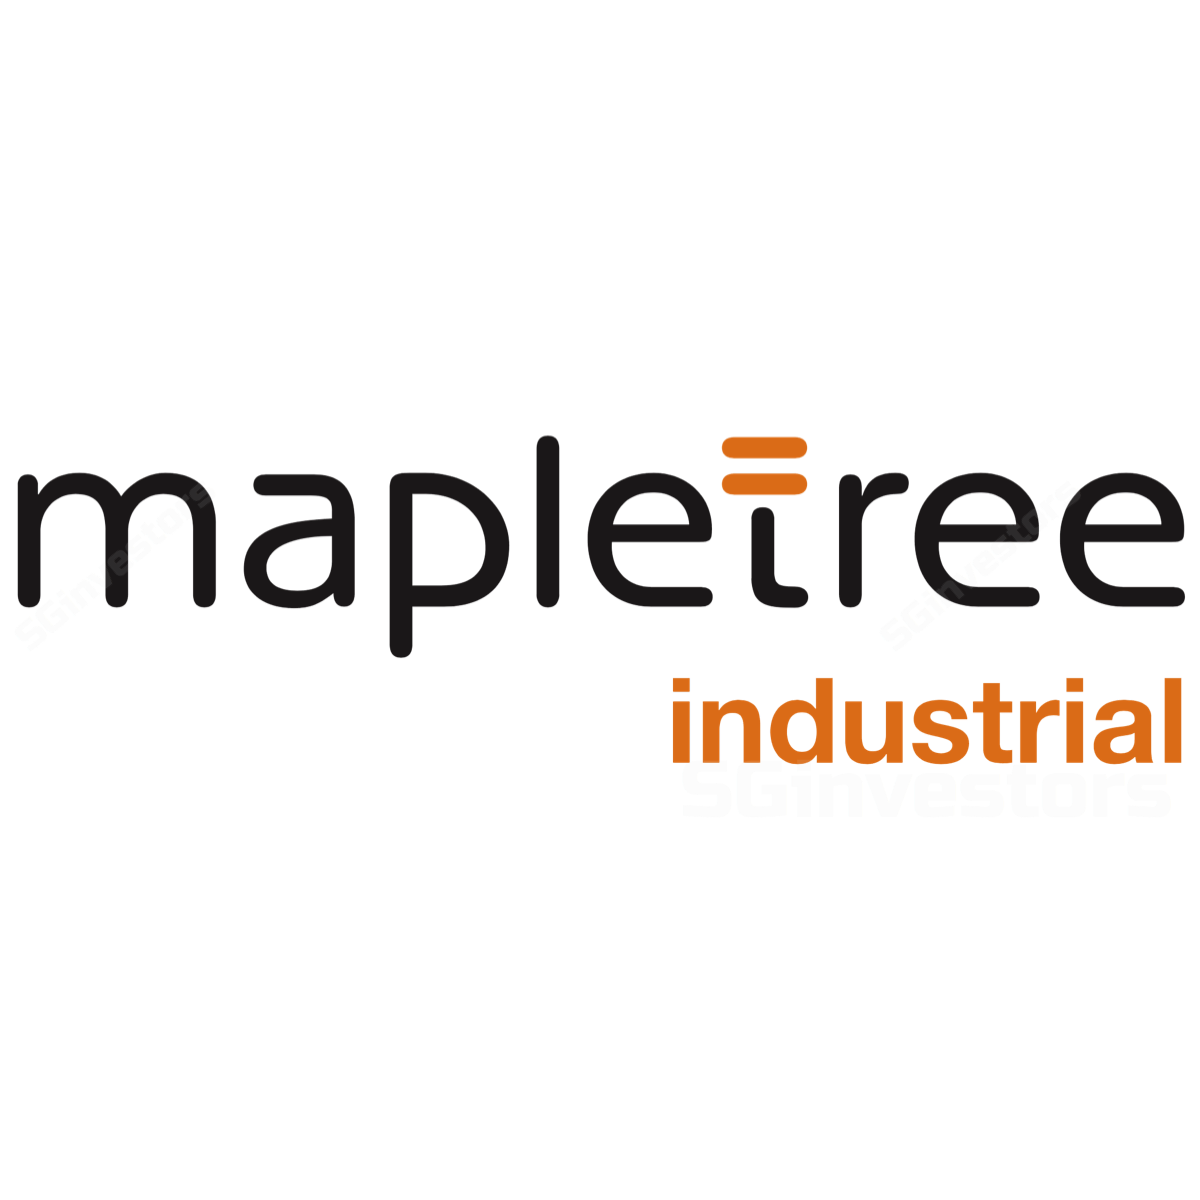 Mapletree Industrial Trust - OCBC Investment 2017-06-20: Recent Pullback Presents Buying Opportunities